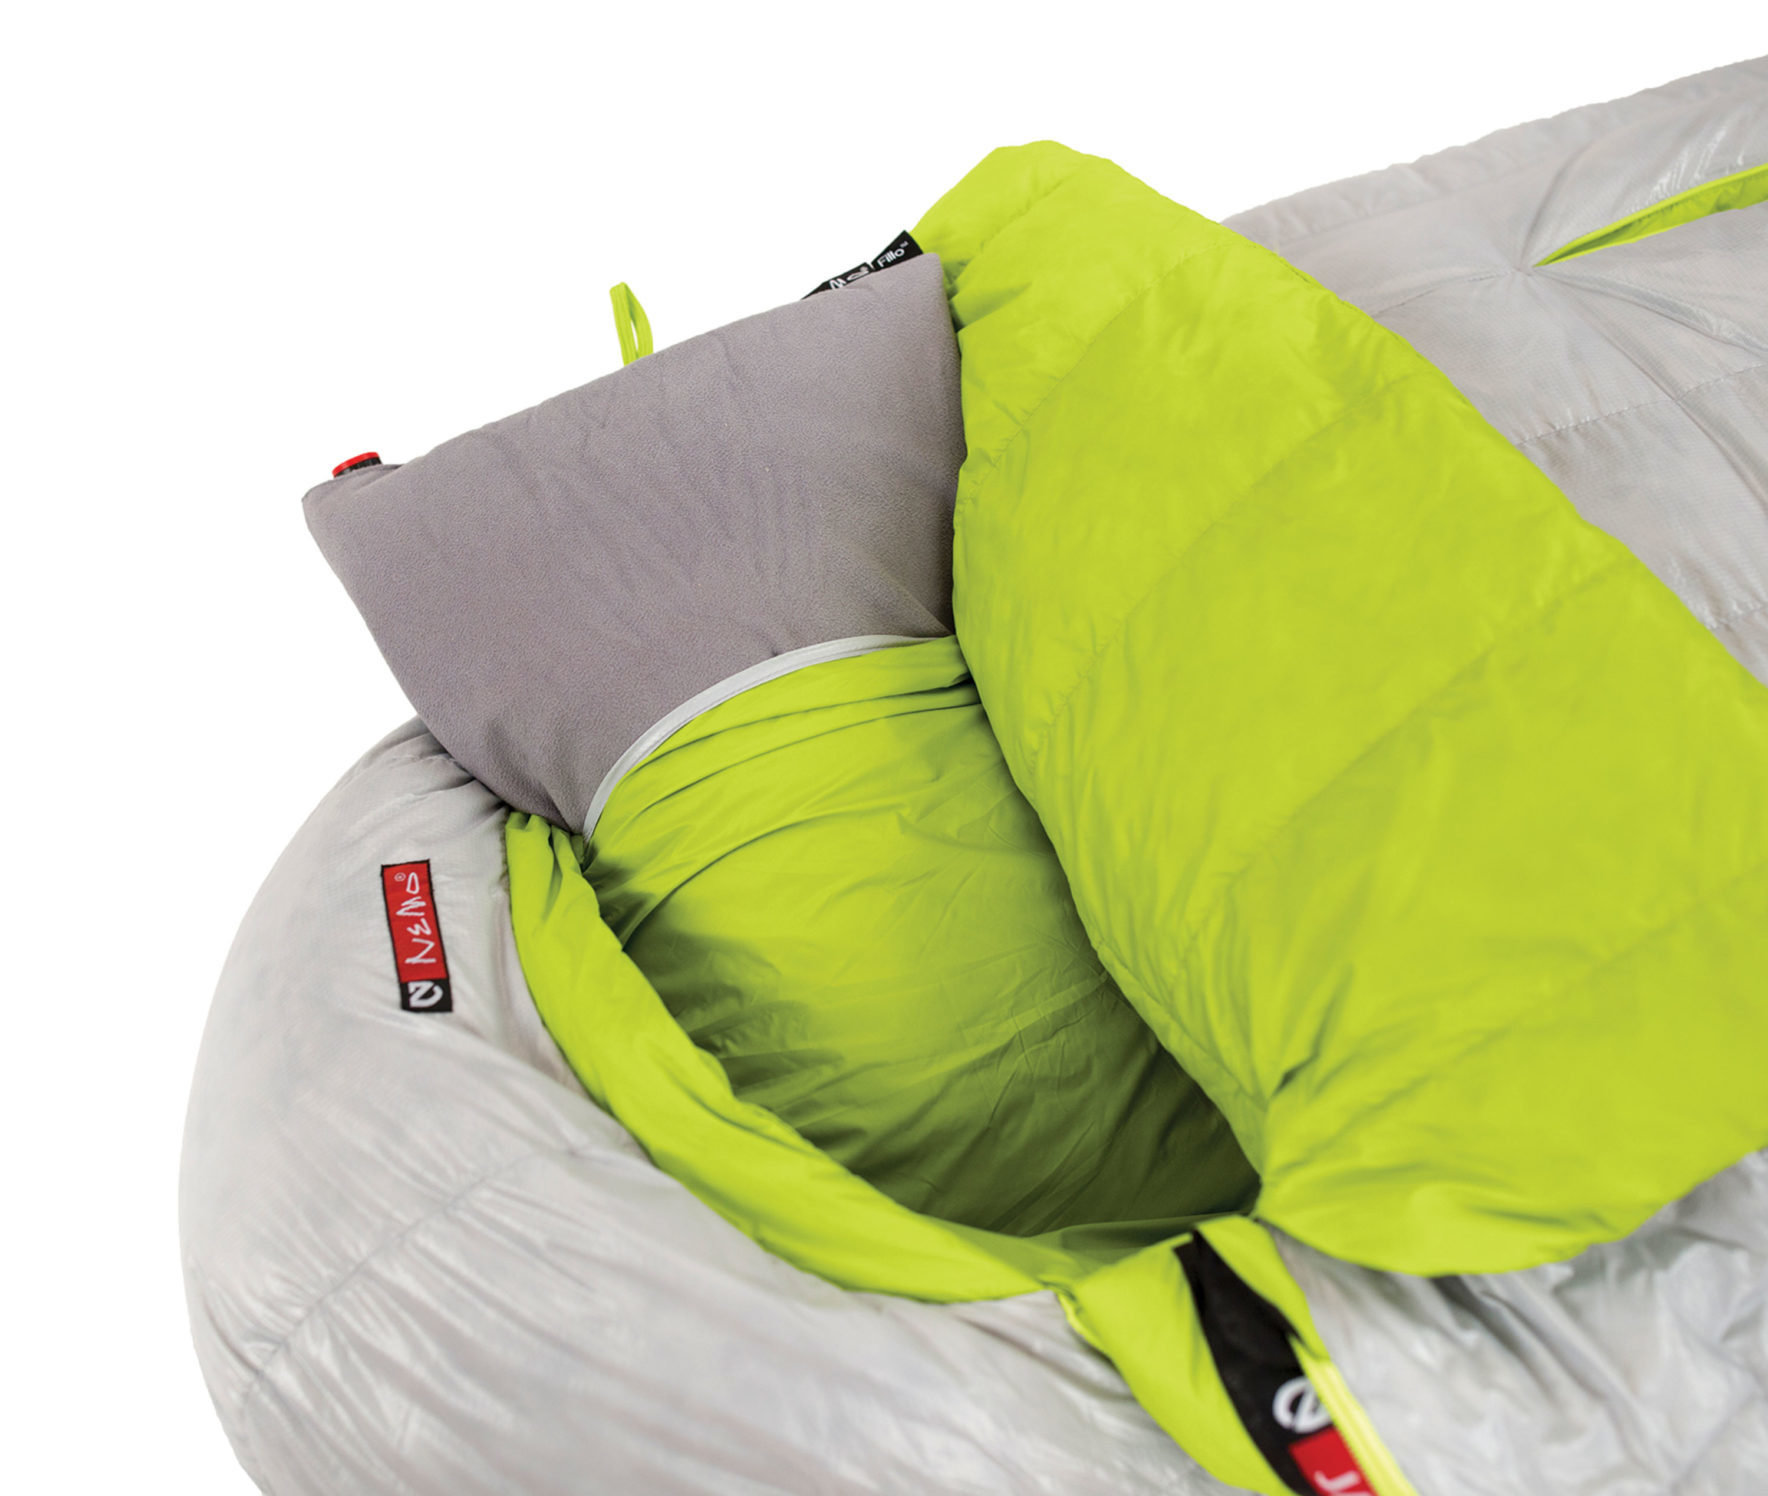 NEMO Jam Women's Down Sleeping Bag